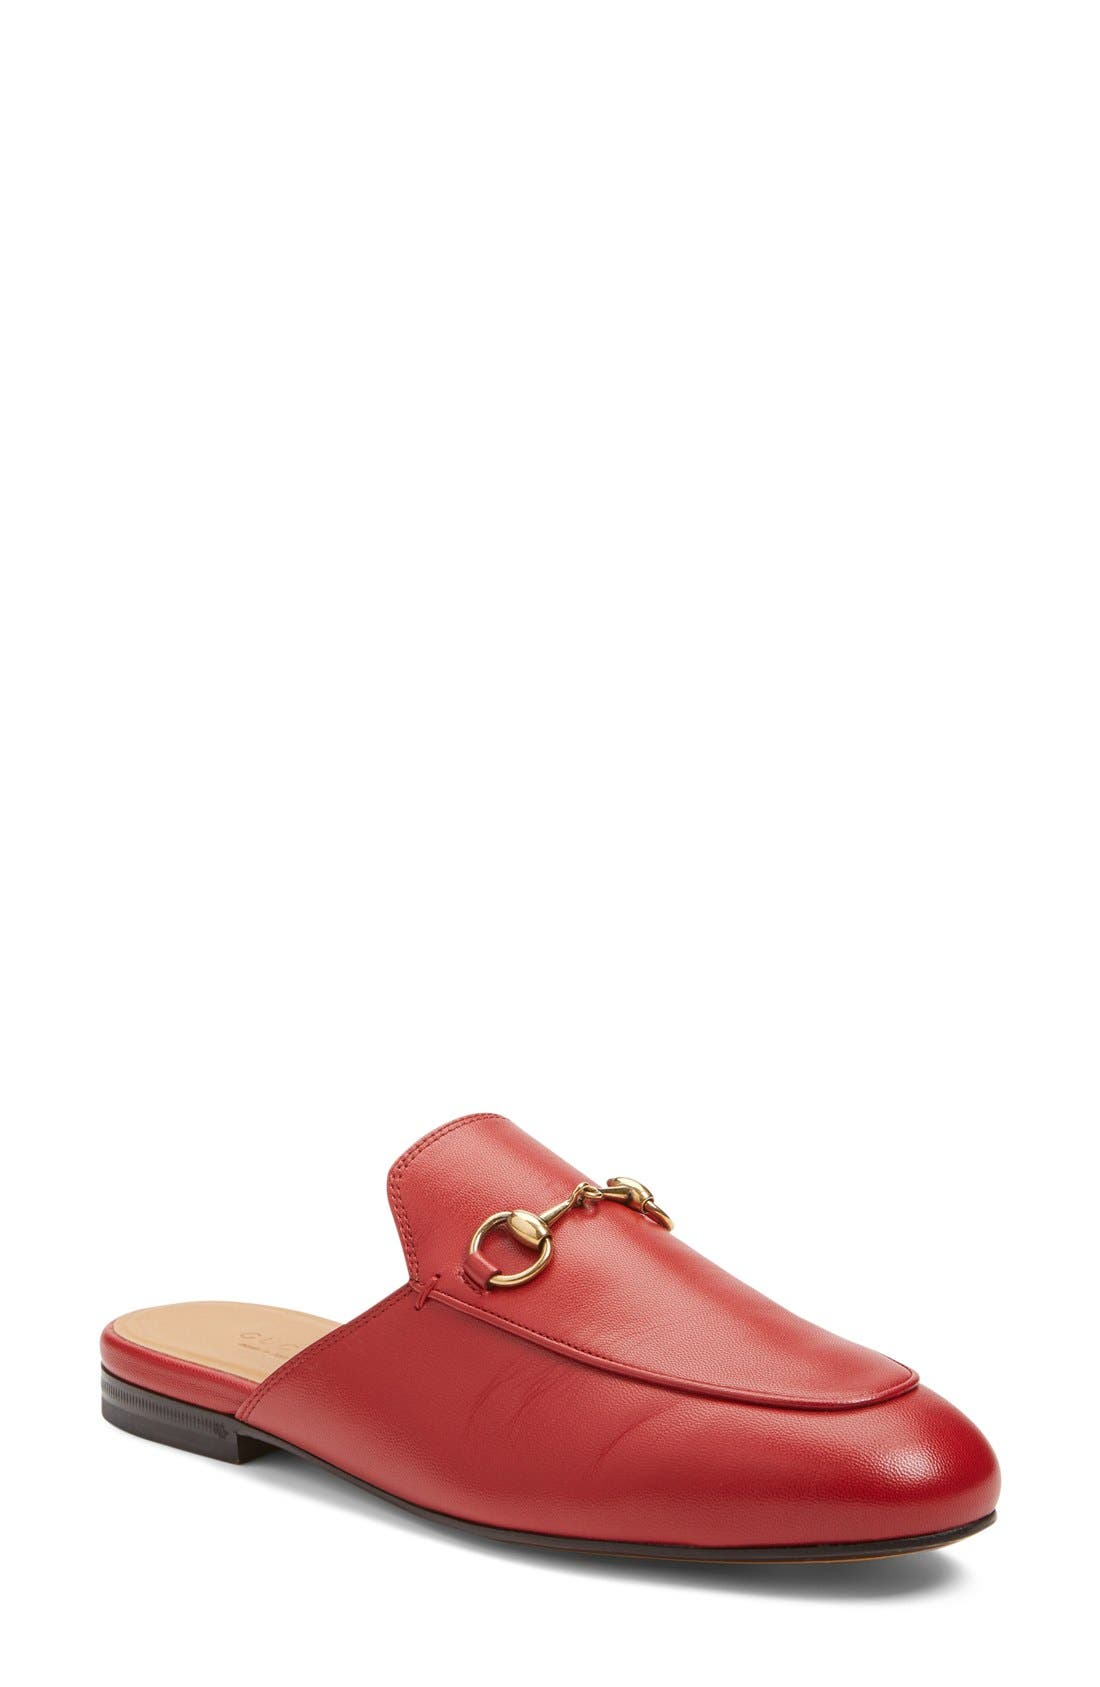 Main Image - Gucci Princetown Loafer Mule (Women)